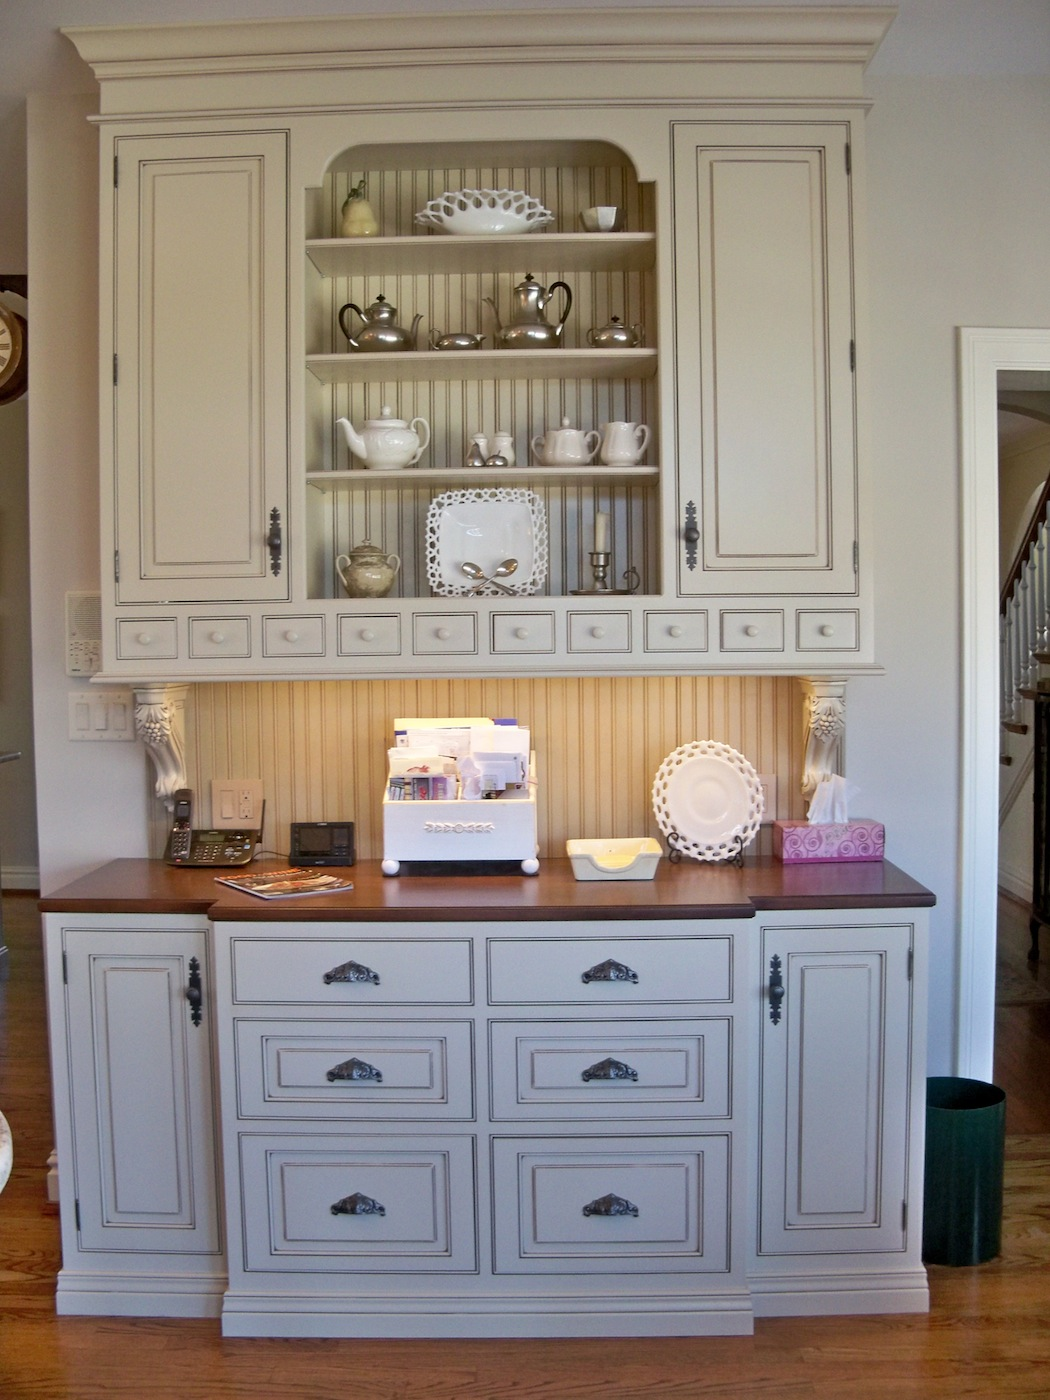 palette for the kitchen is soft neutrals The traditional cabinets